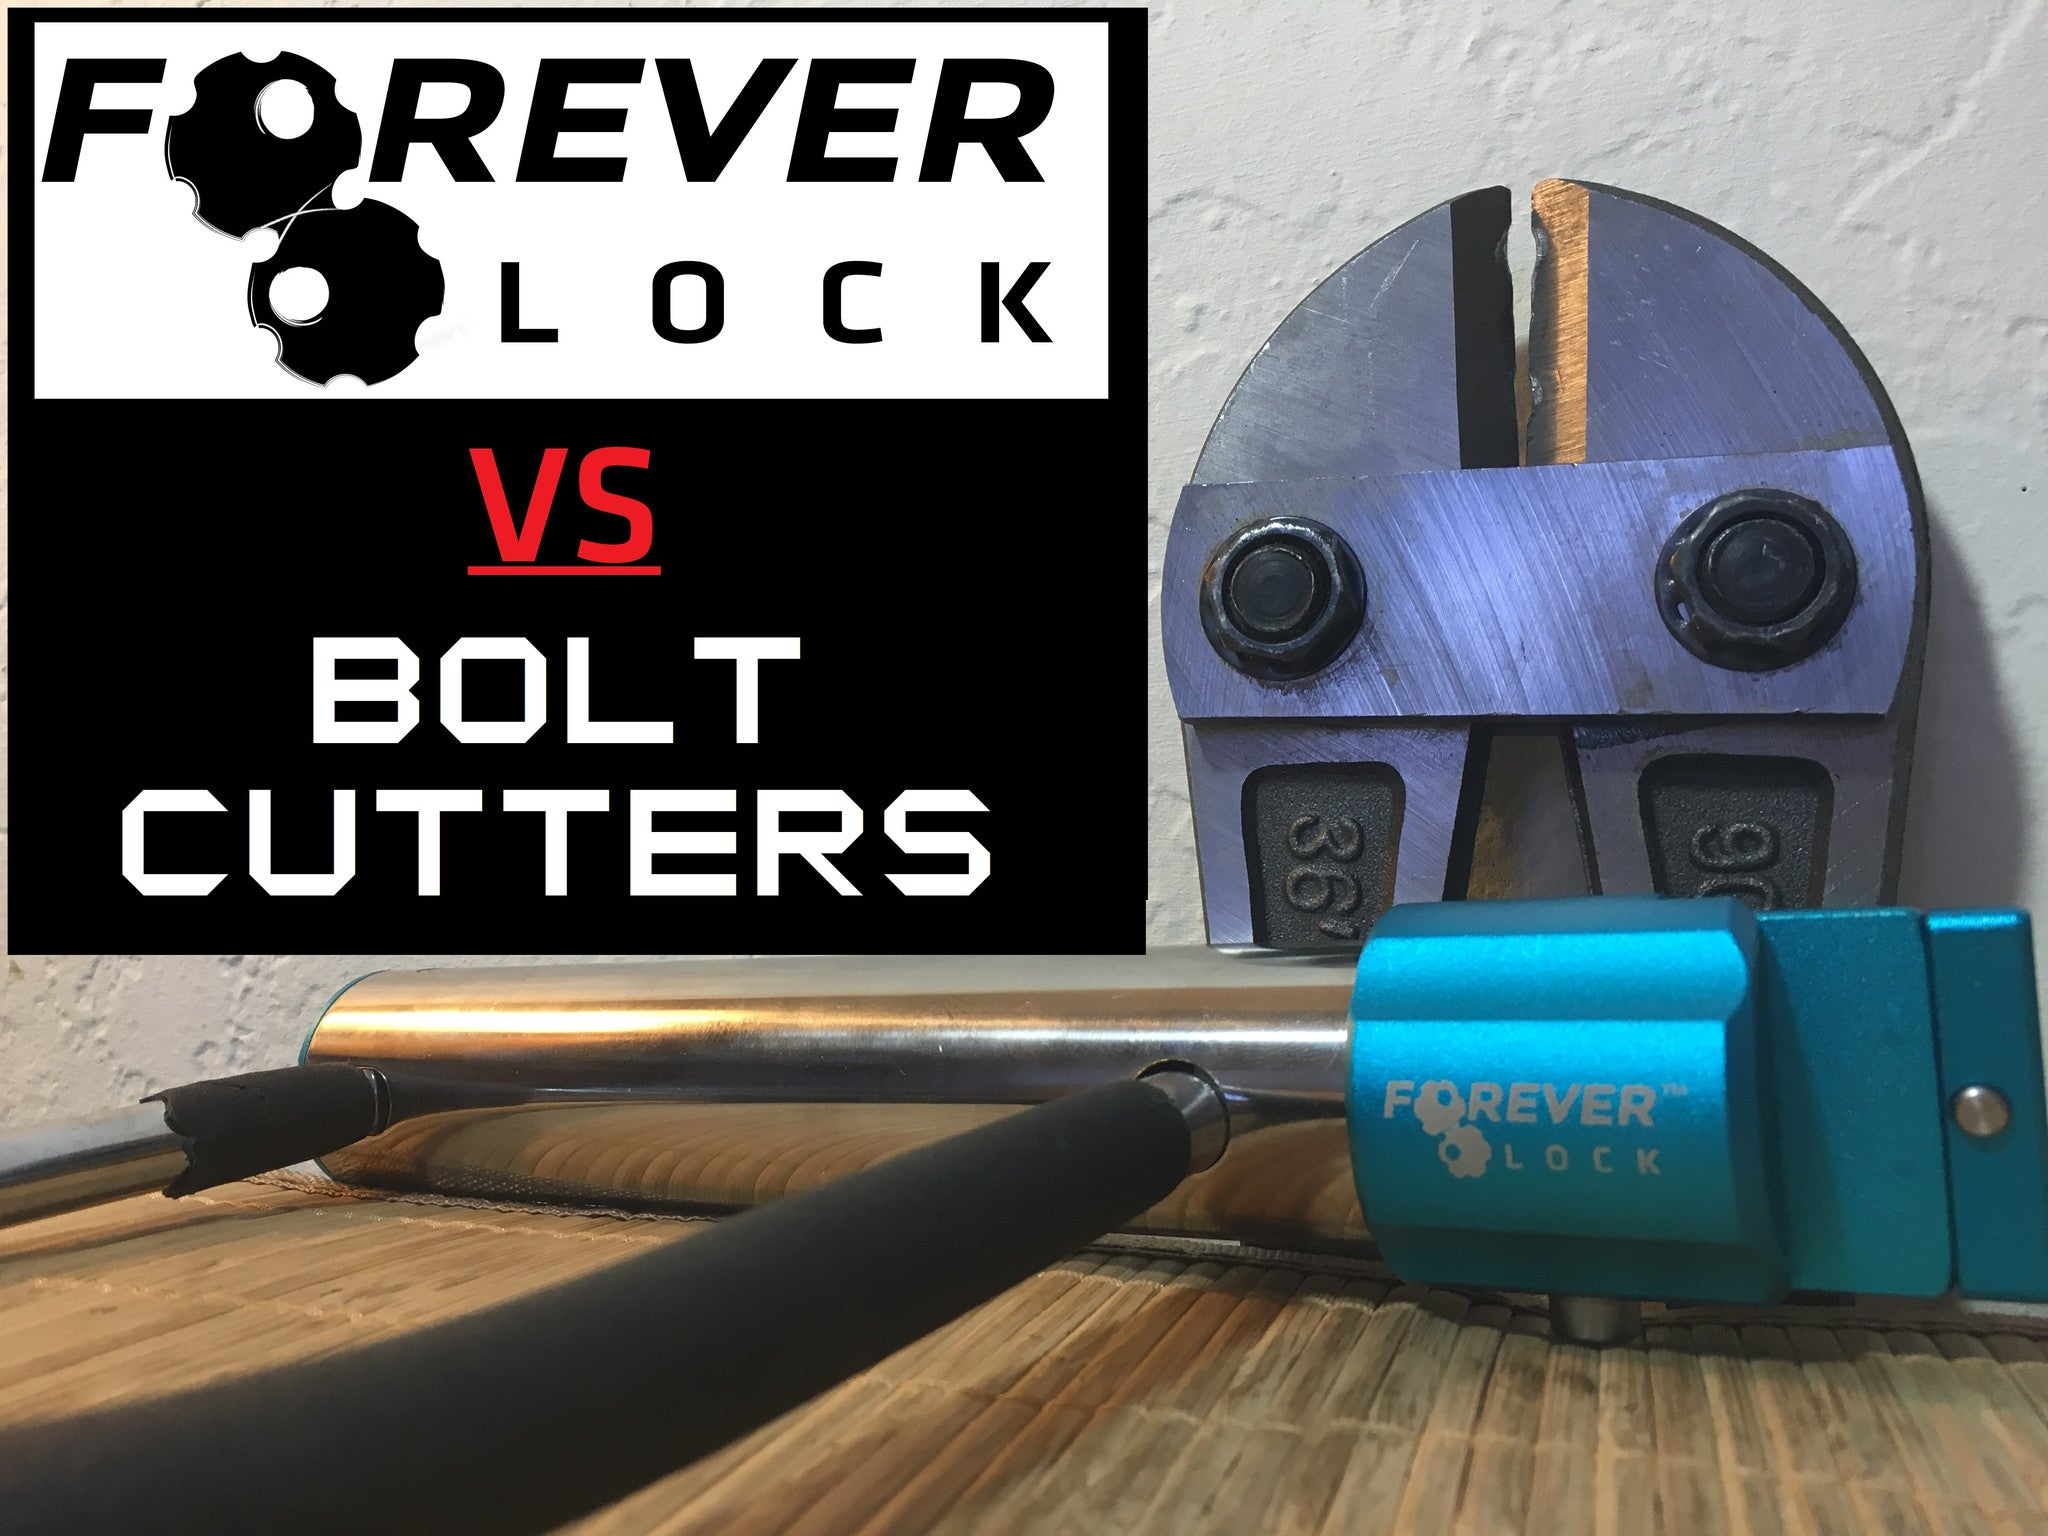 Bolt Cutters are no match for the Forever Lock!